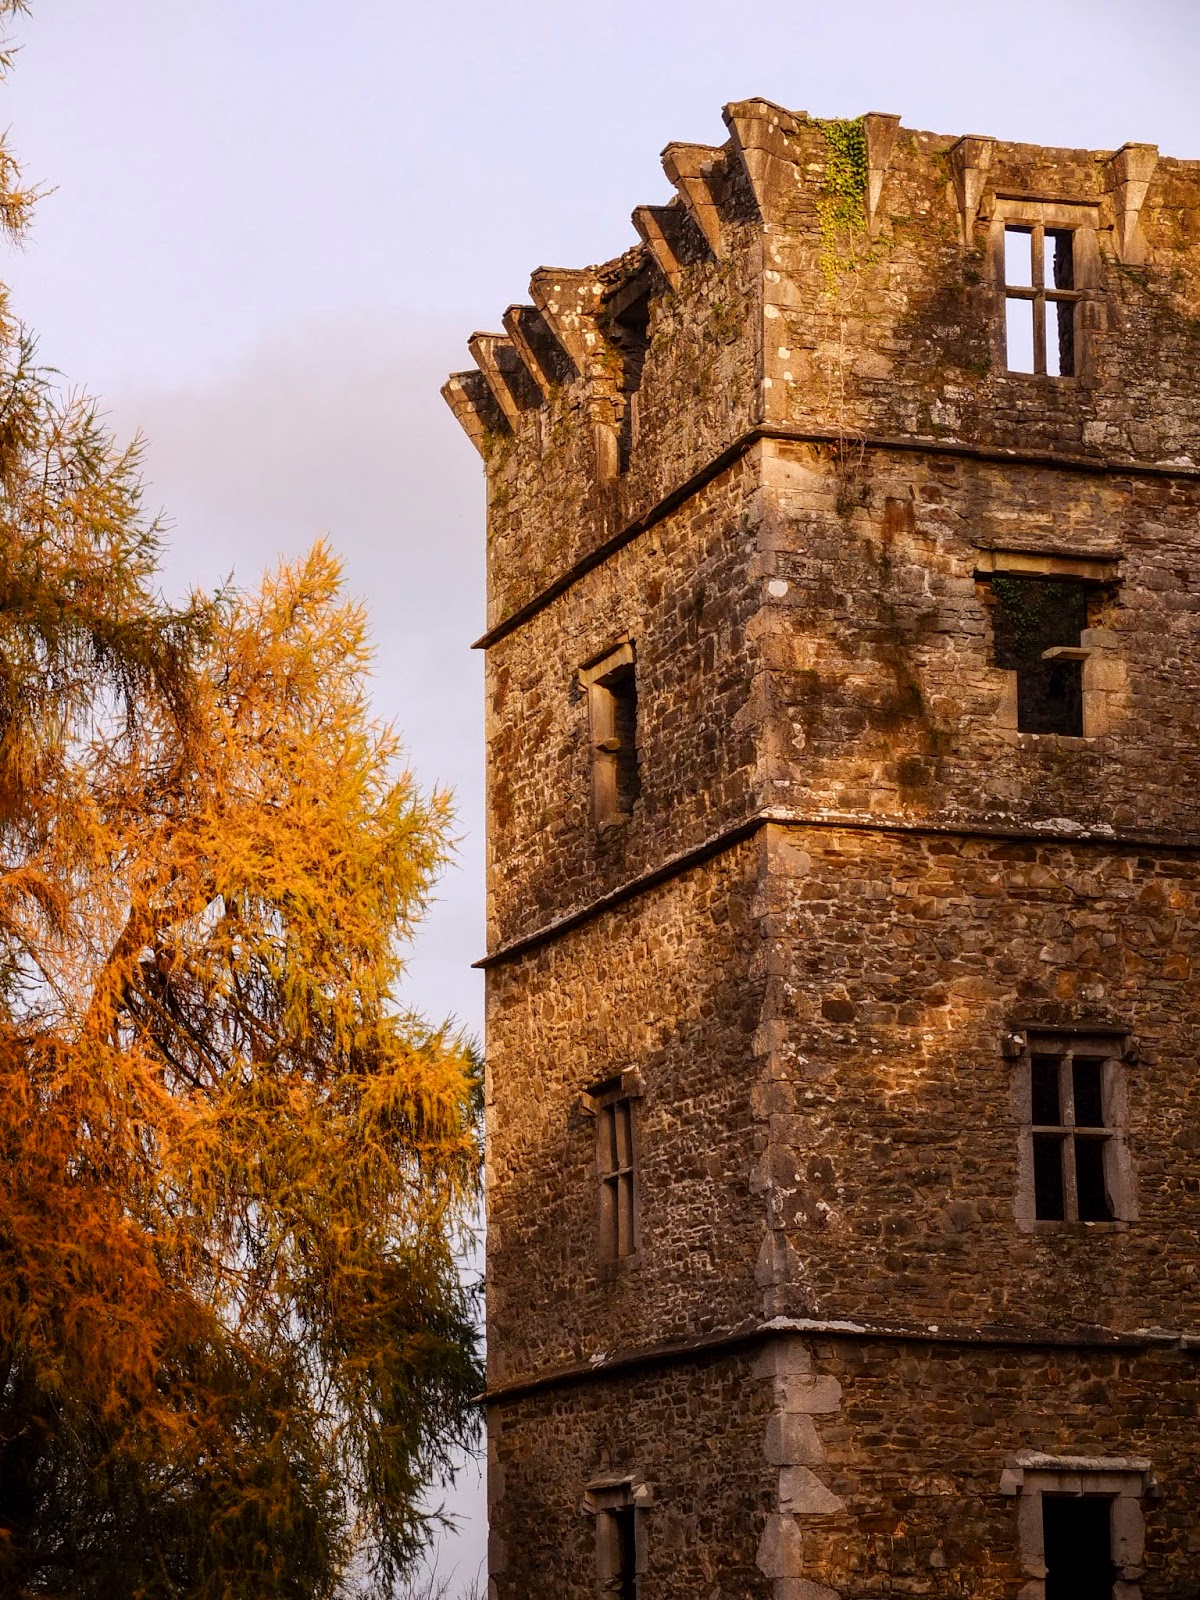 Autumn sunset light shining on conifer trees and a Kanturk Castle tower in North Co.Cork.